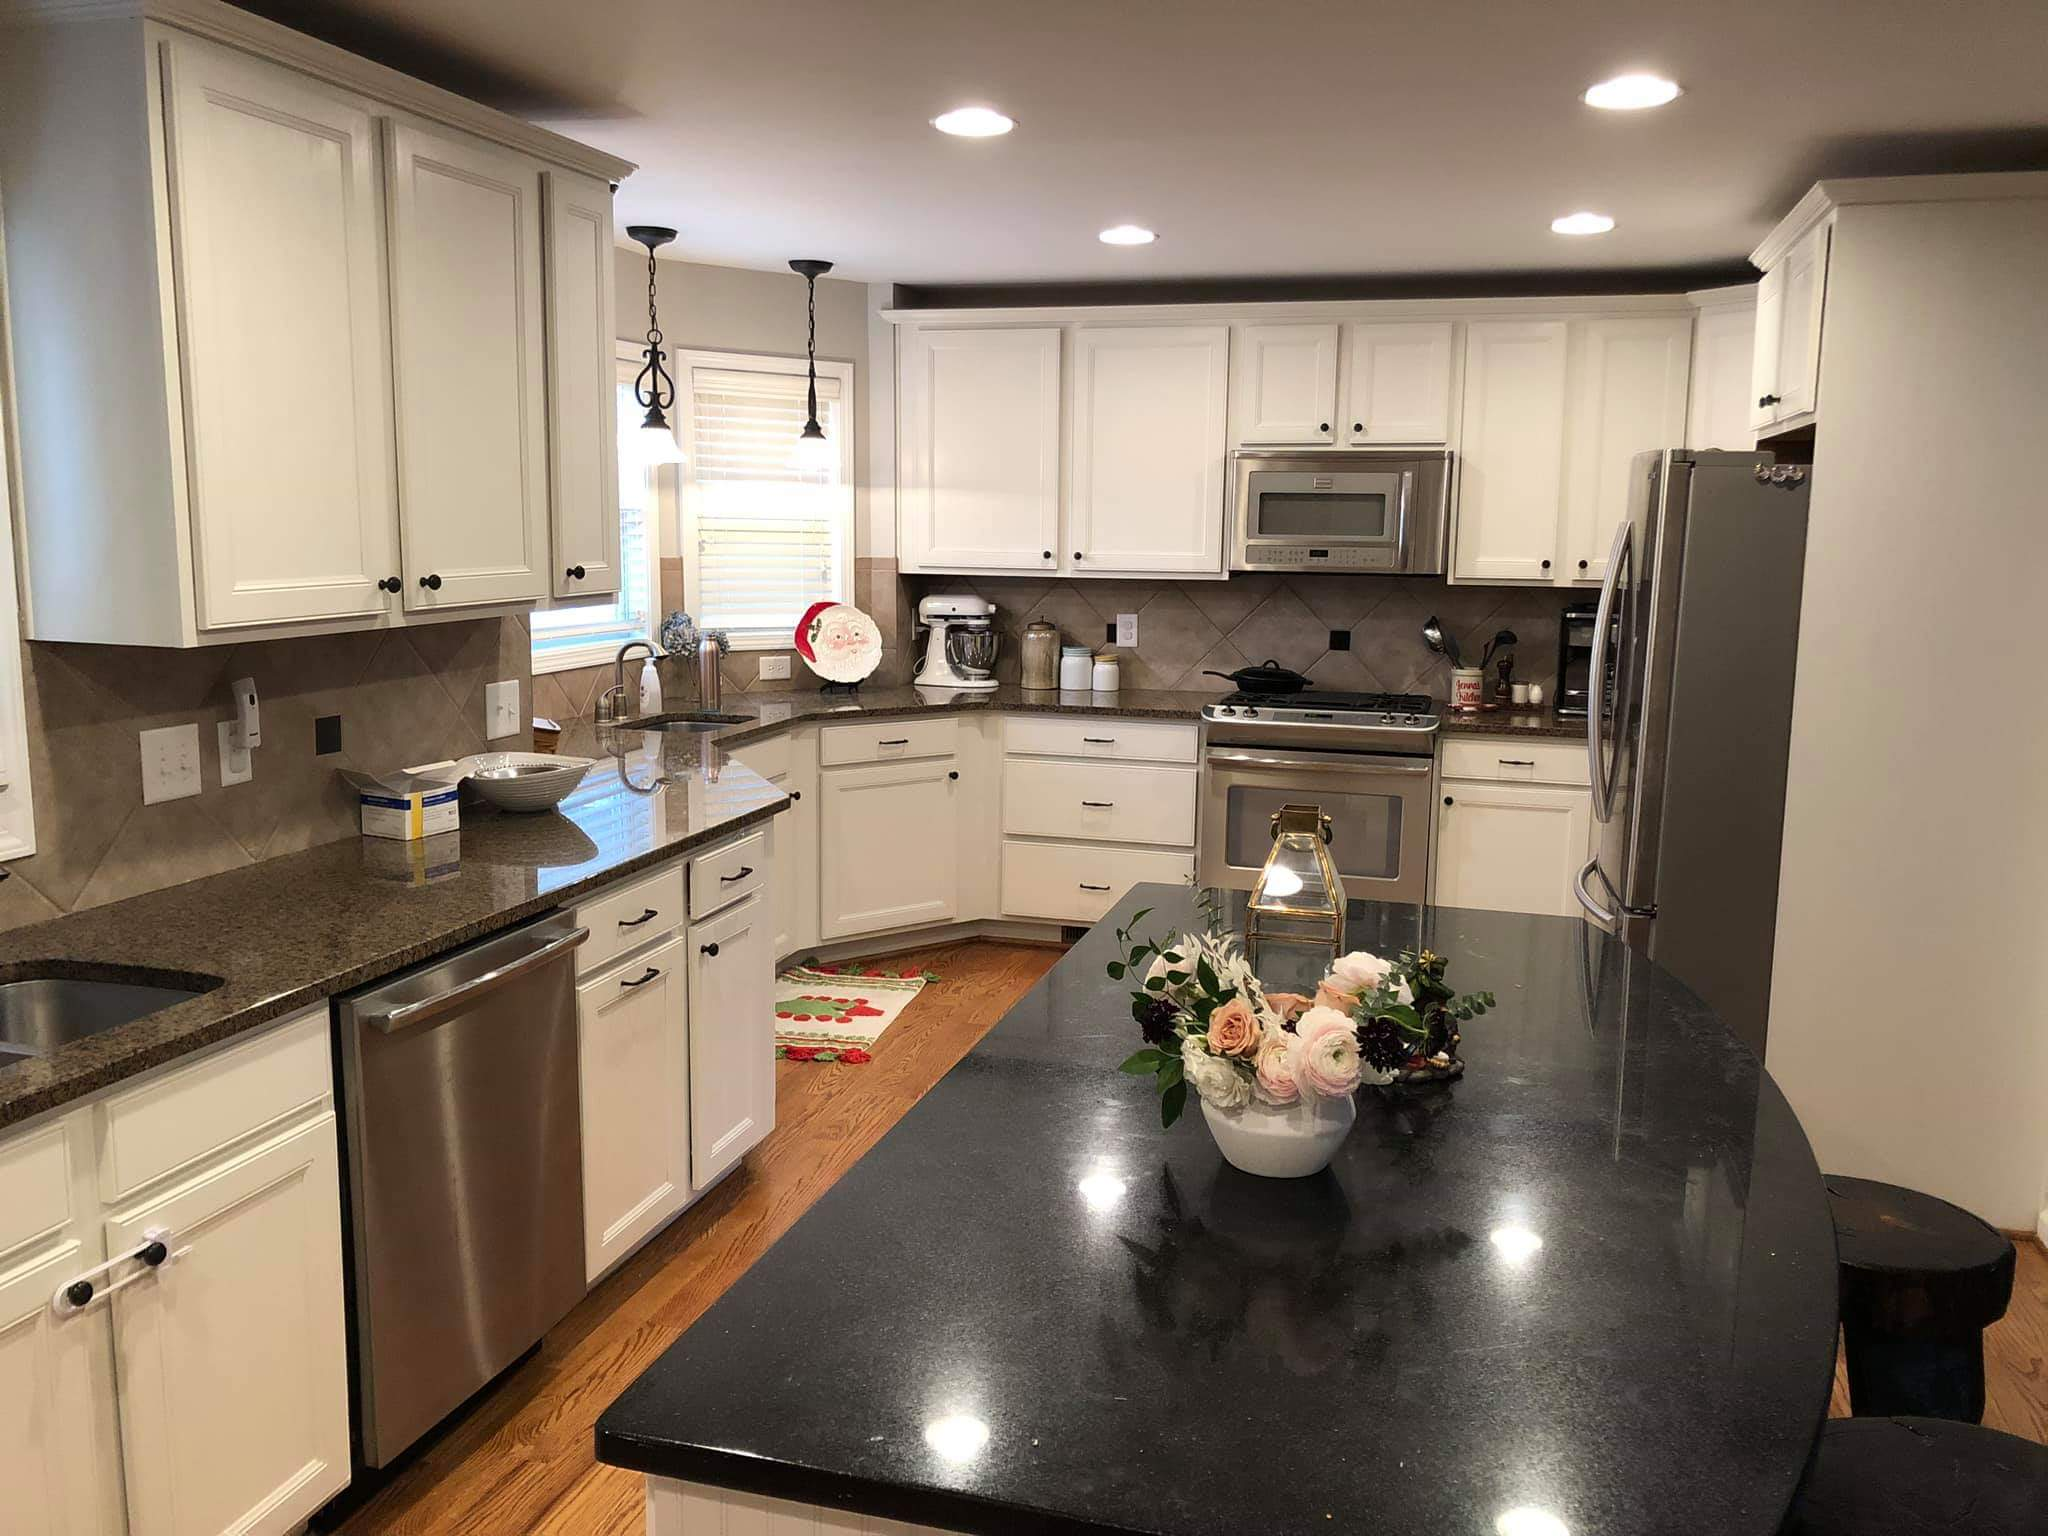 For kitchen cabinet painting Woodstock GA homeowners call the pros at Residential Property Preservation.